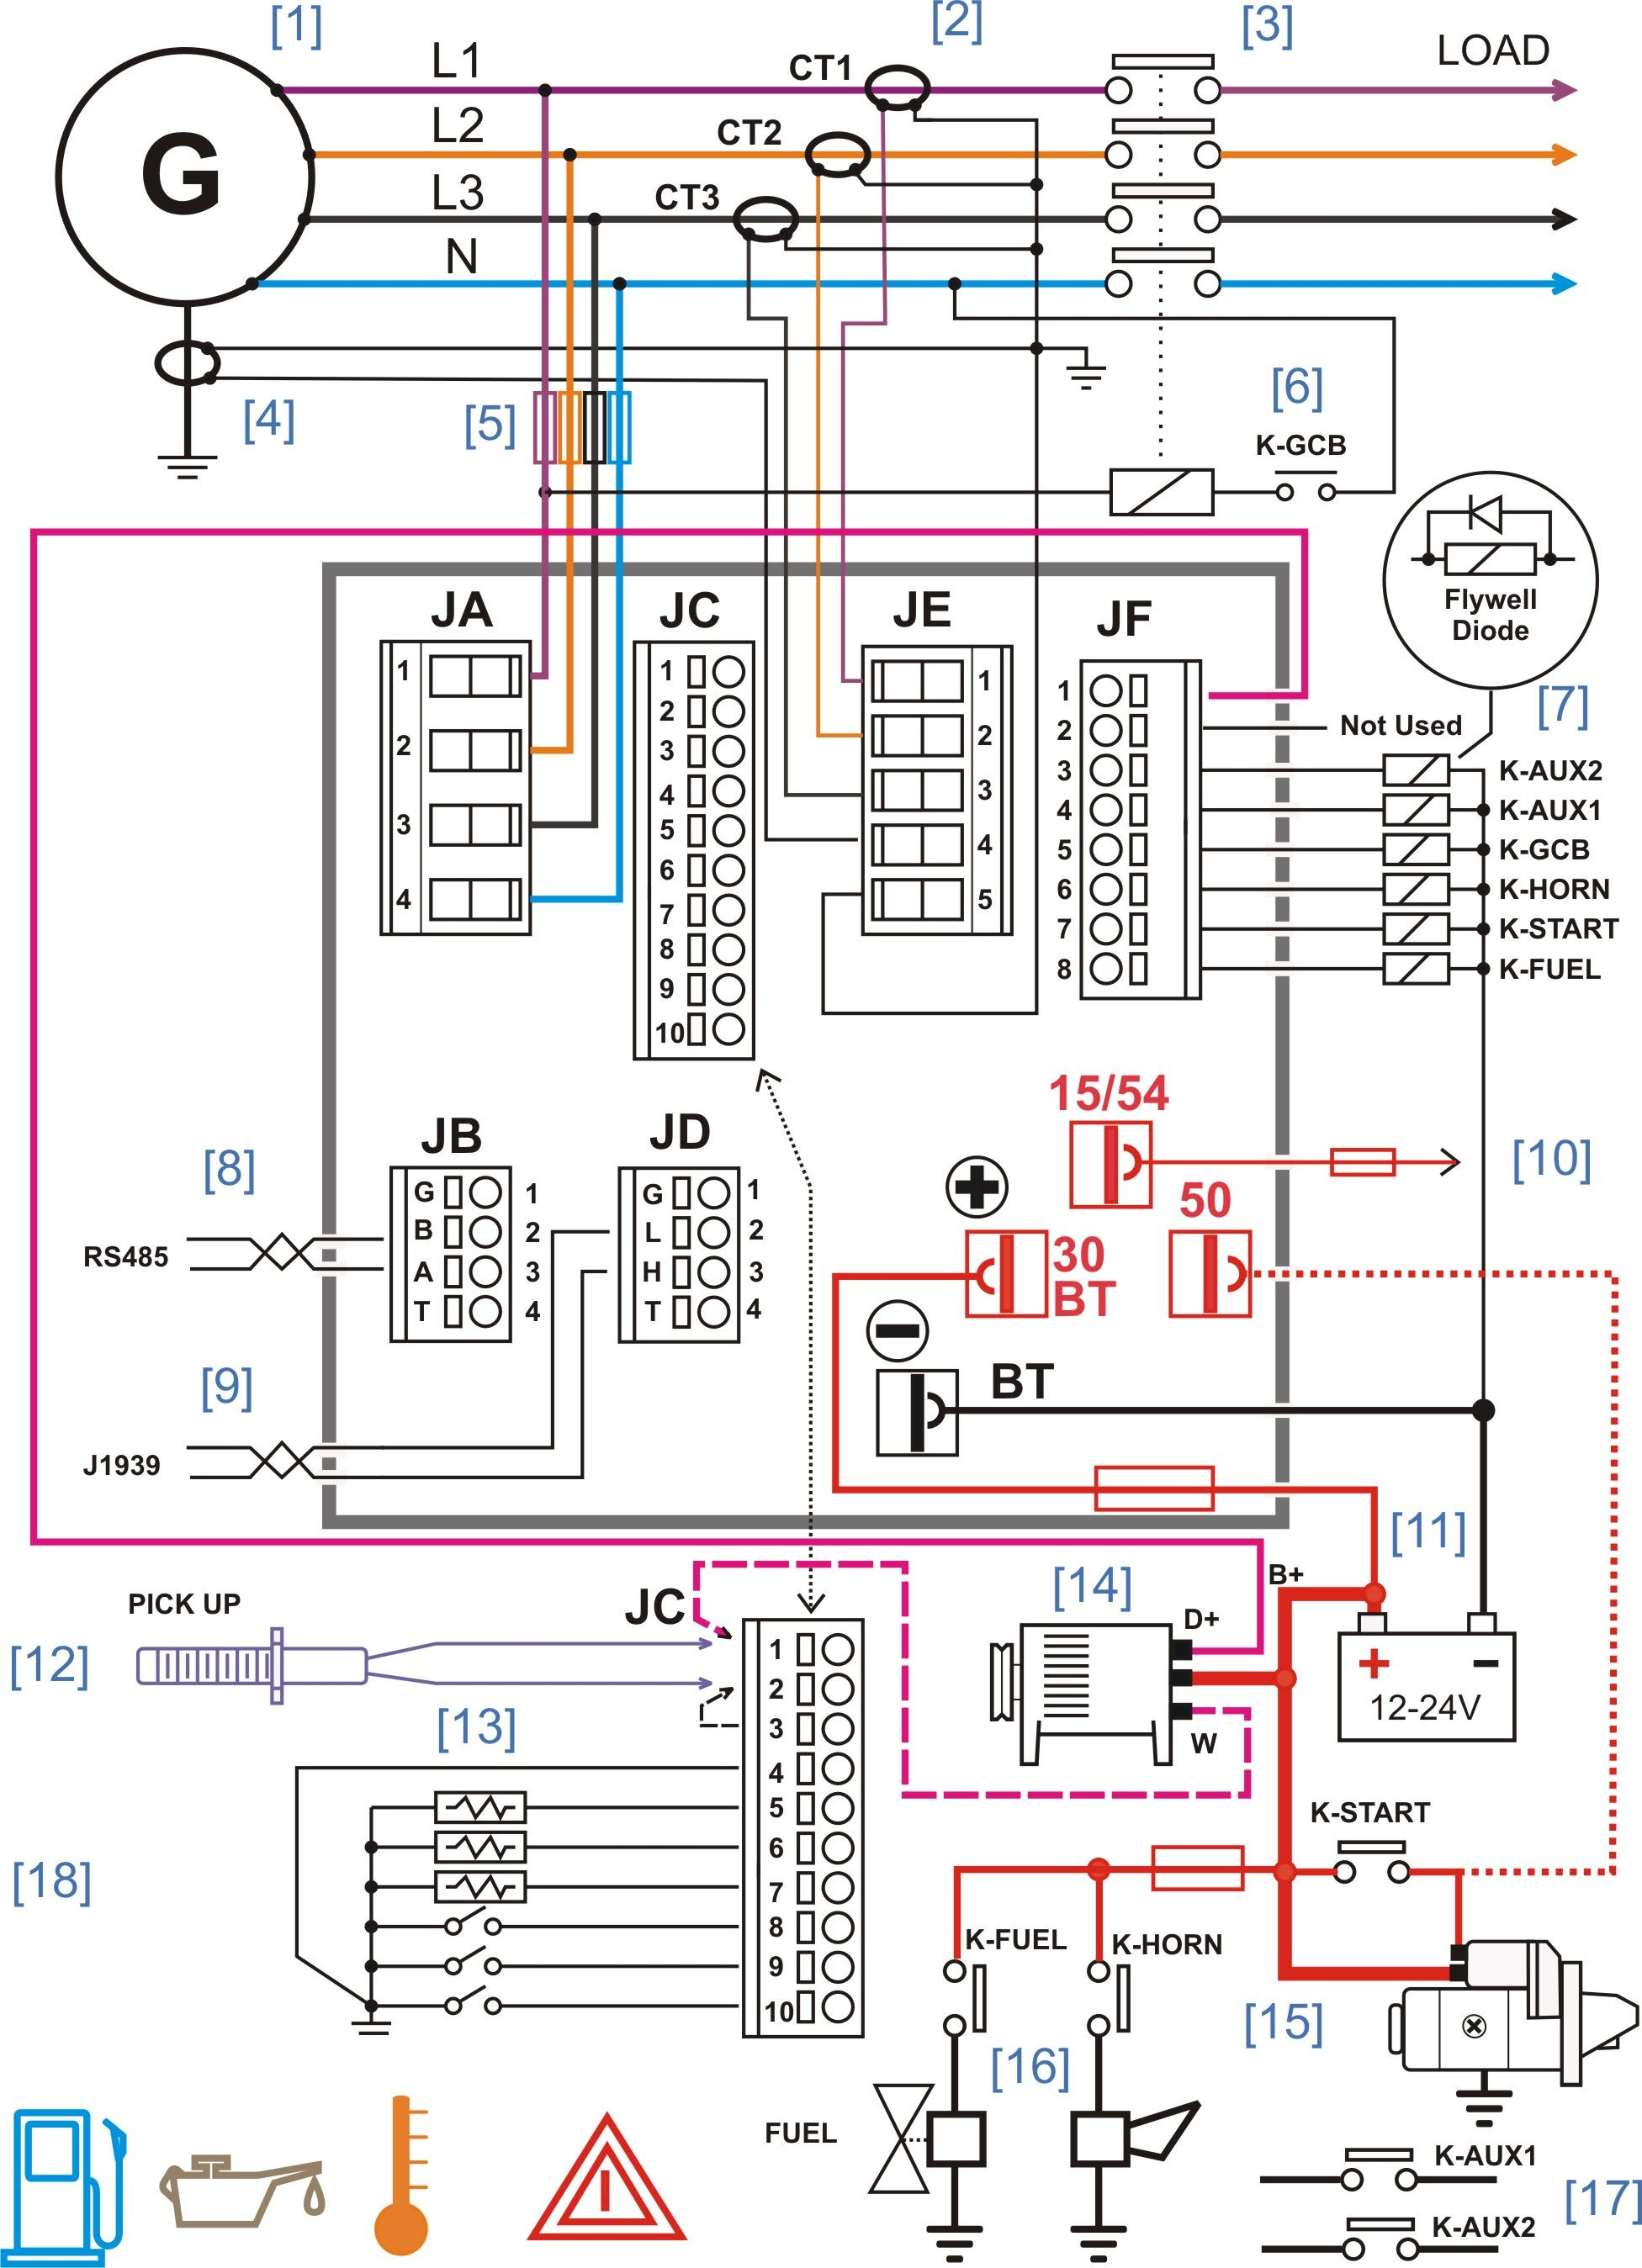 generator electrical diagram wiring diagrams rh silviaardila co electrical diagram software free download electrical diagram software